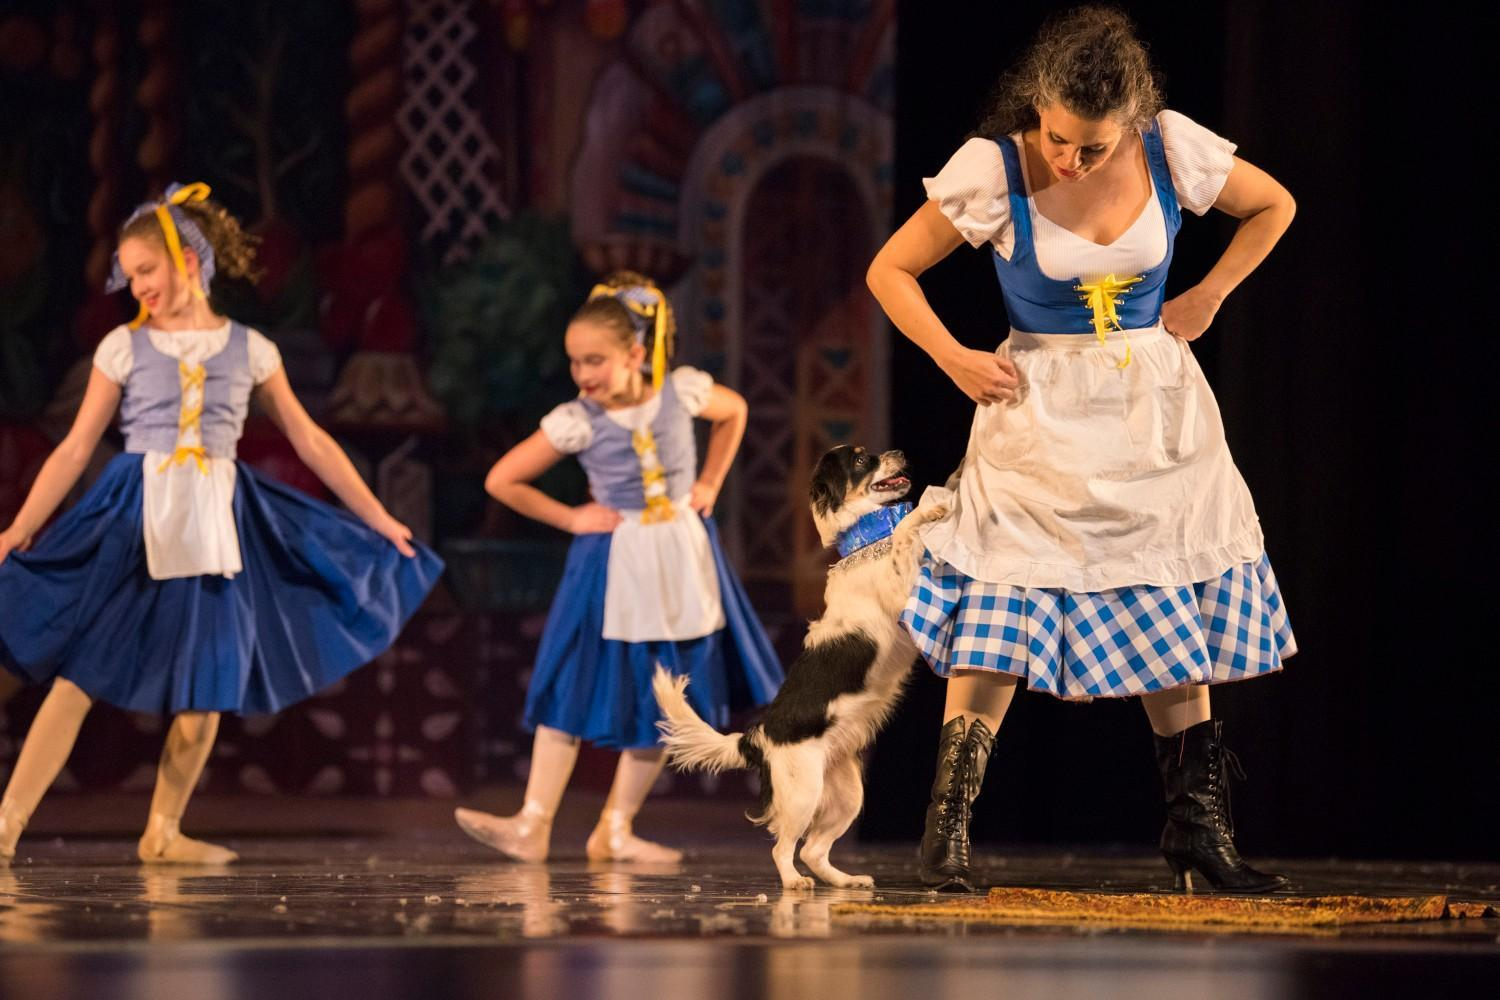 A dog dances with three ballet dances in blue and white dresses.